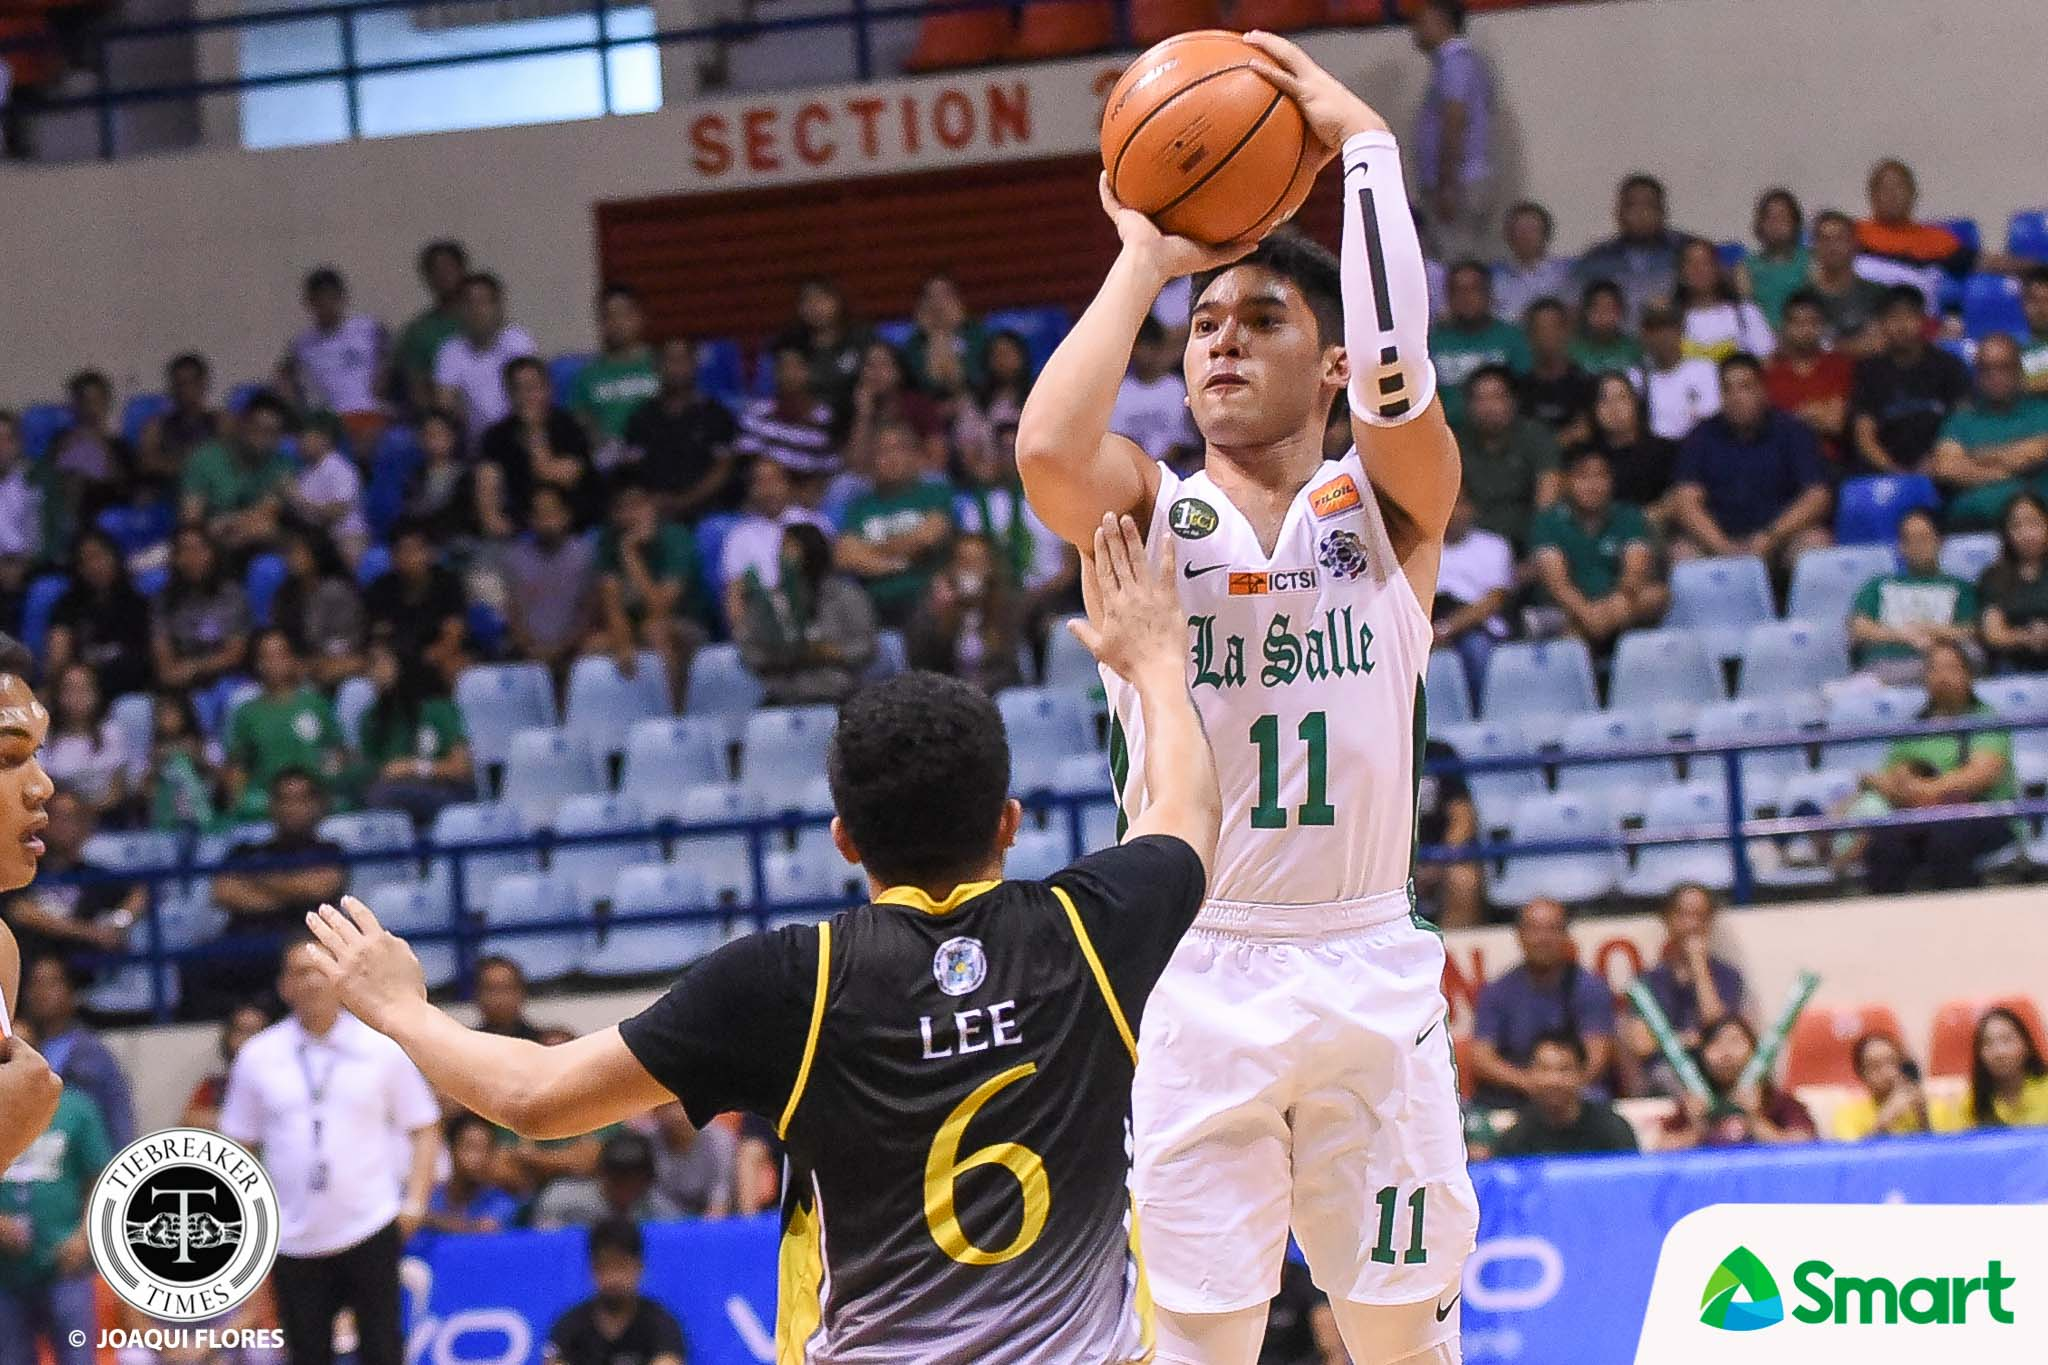 Tiebreaker Times Aljun Melecio, La Salle waylay UST with 41-point bloodbath Basketball DLSU News UAAP UST  UST Men's Basketball UAAP Season 81 Men's Basketball UAAP Season 81 Mark Dyke Louie Gonzalez Justine Baltazar DLSU Men's Basketball CJ Cansino Aljun Melecio Aldin Ayo